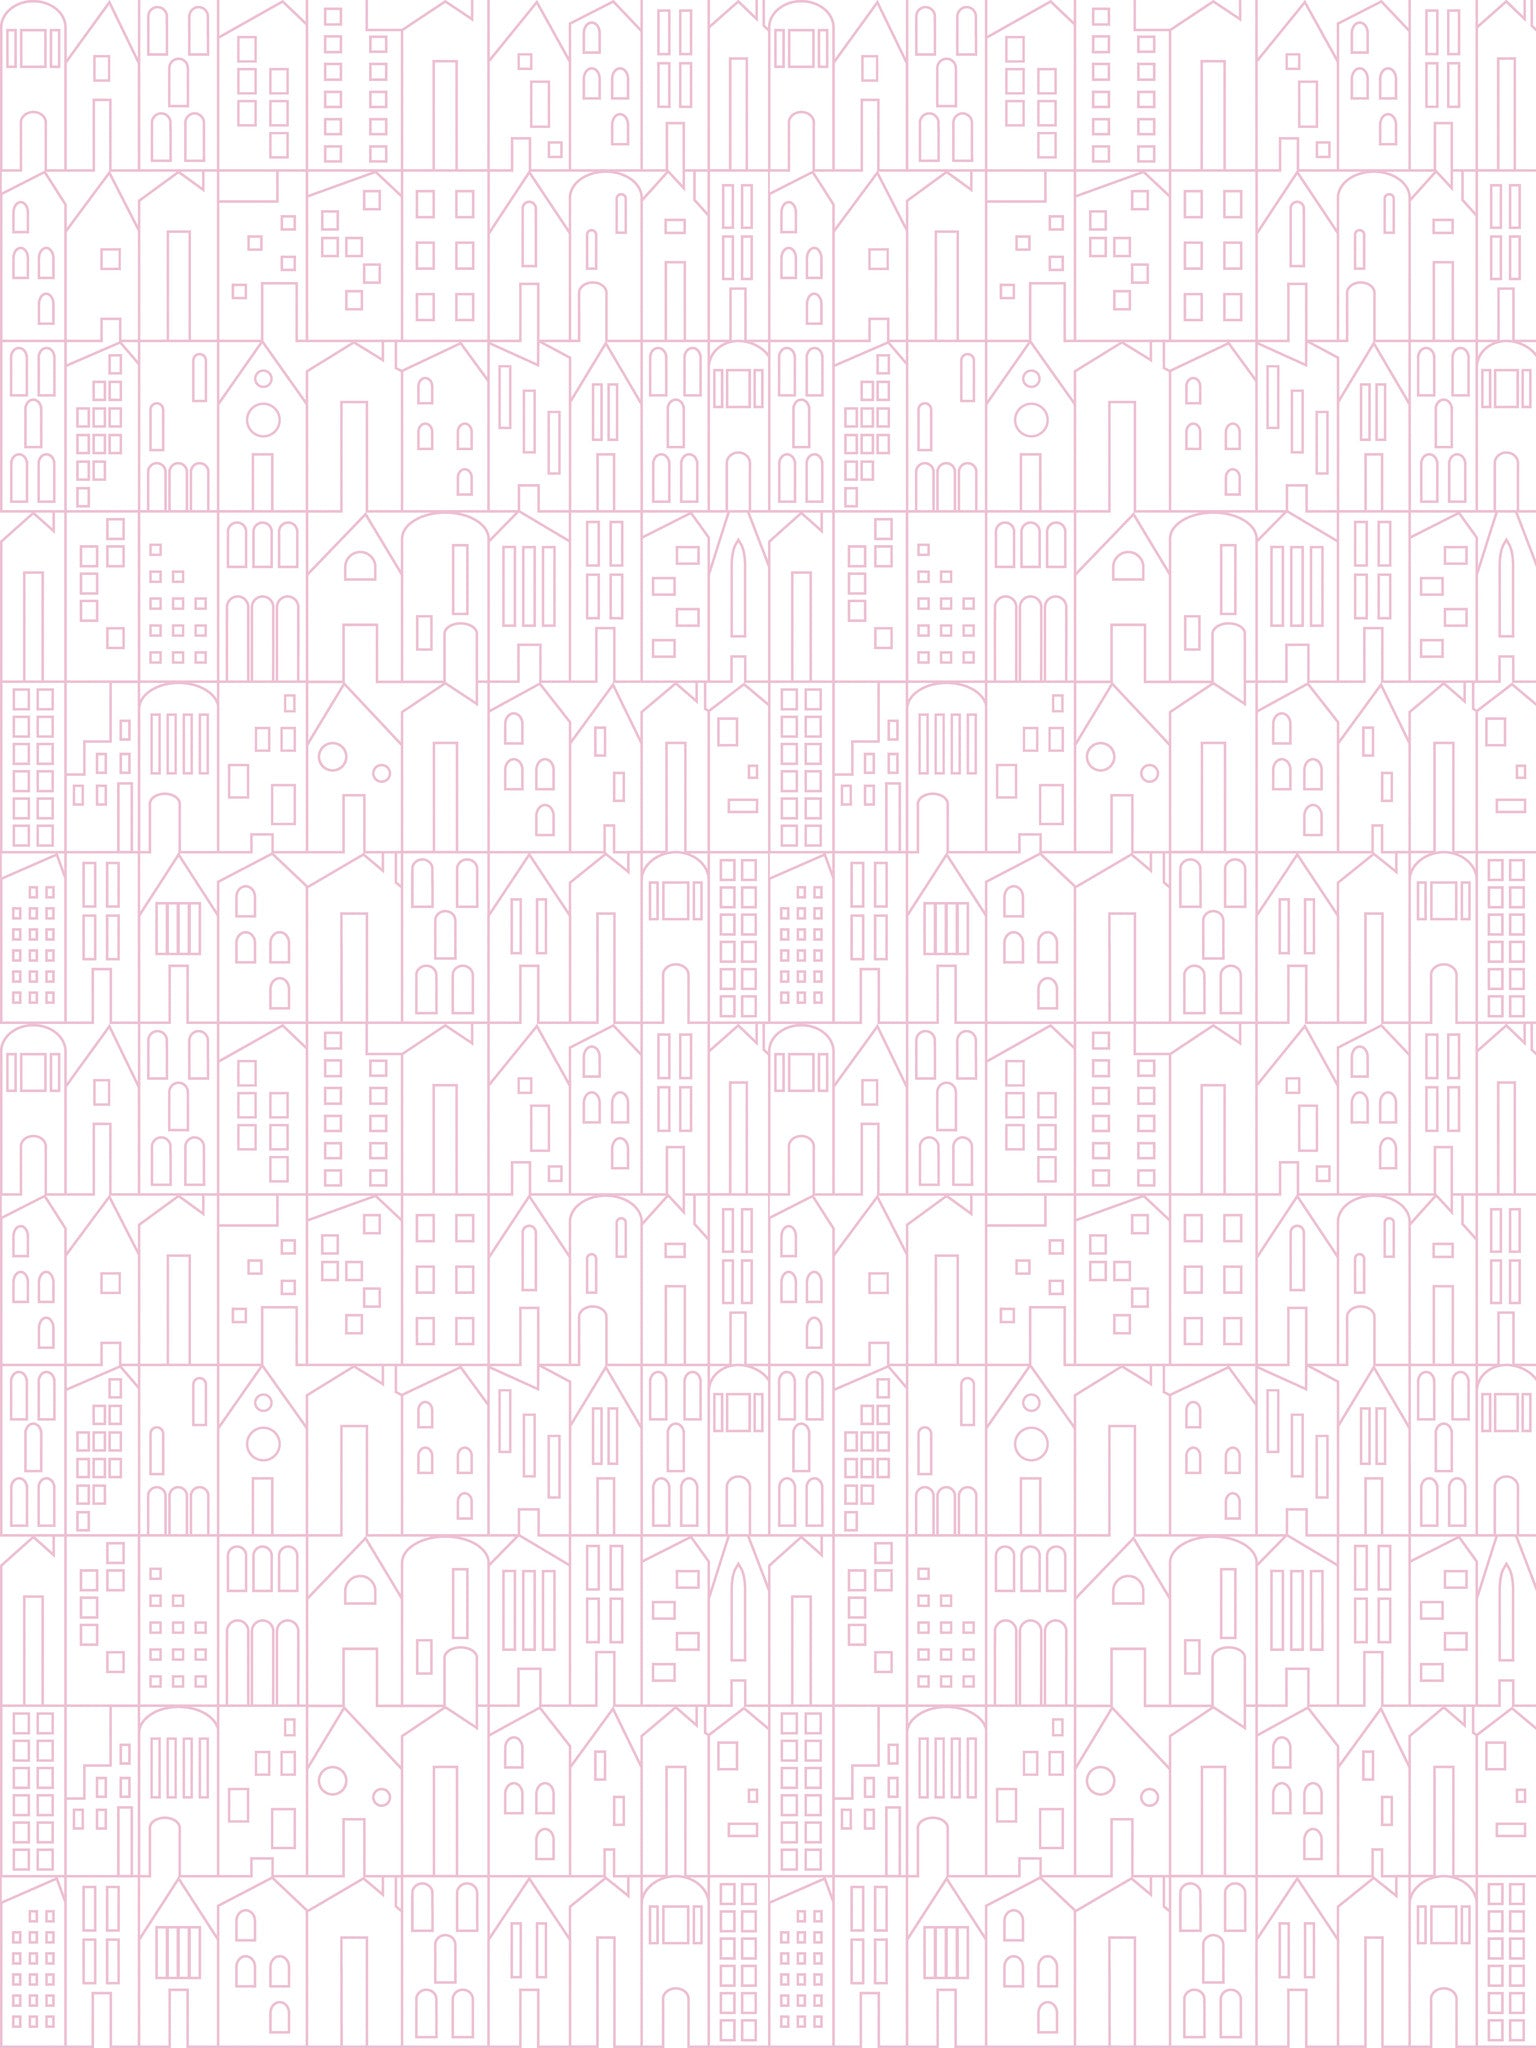 My House Wallpaper in Pink by Sissy Marley for Jill Malek – BURKE